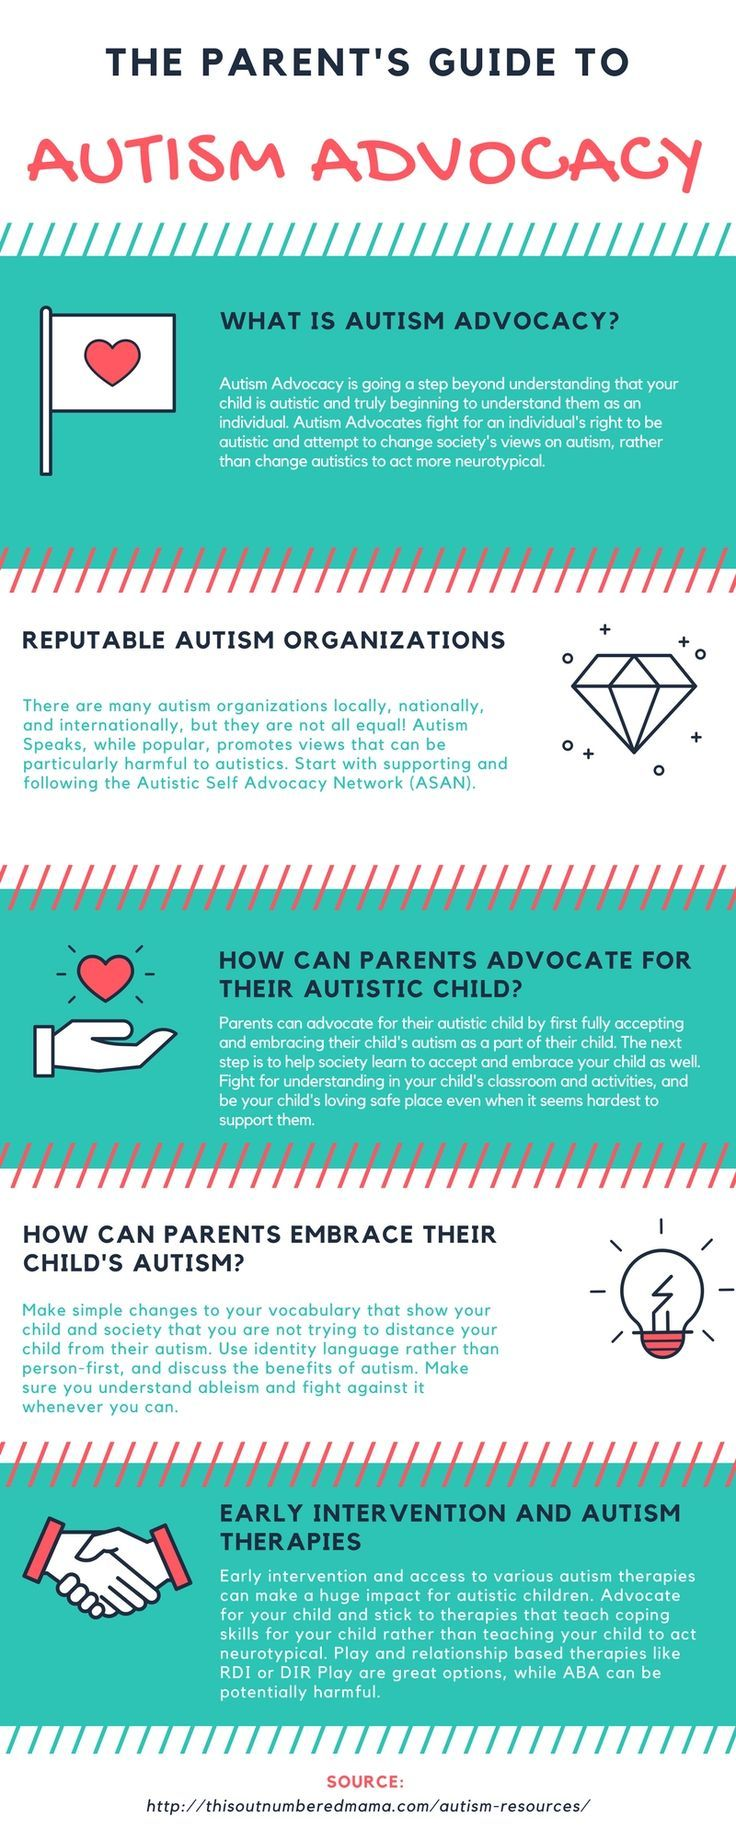 Autism Diagnosis Explained >> Self Advocacy Explained The Practical Guide To Autism For